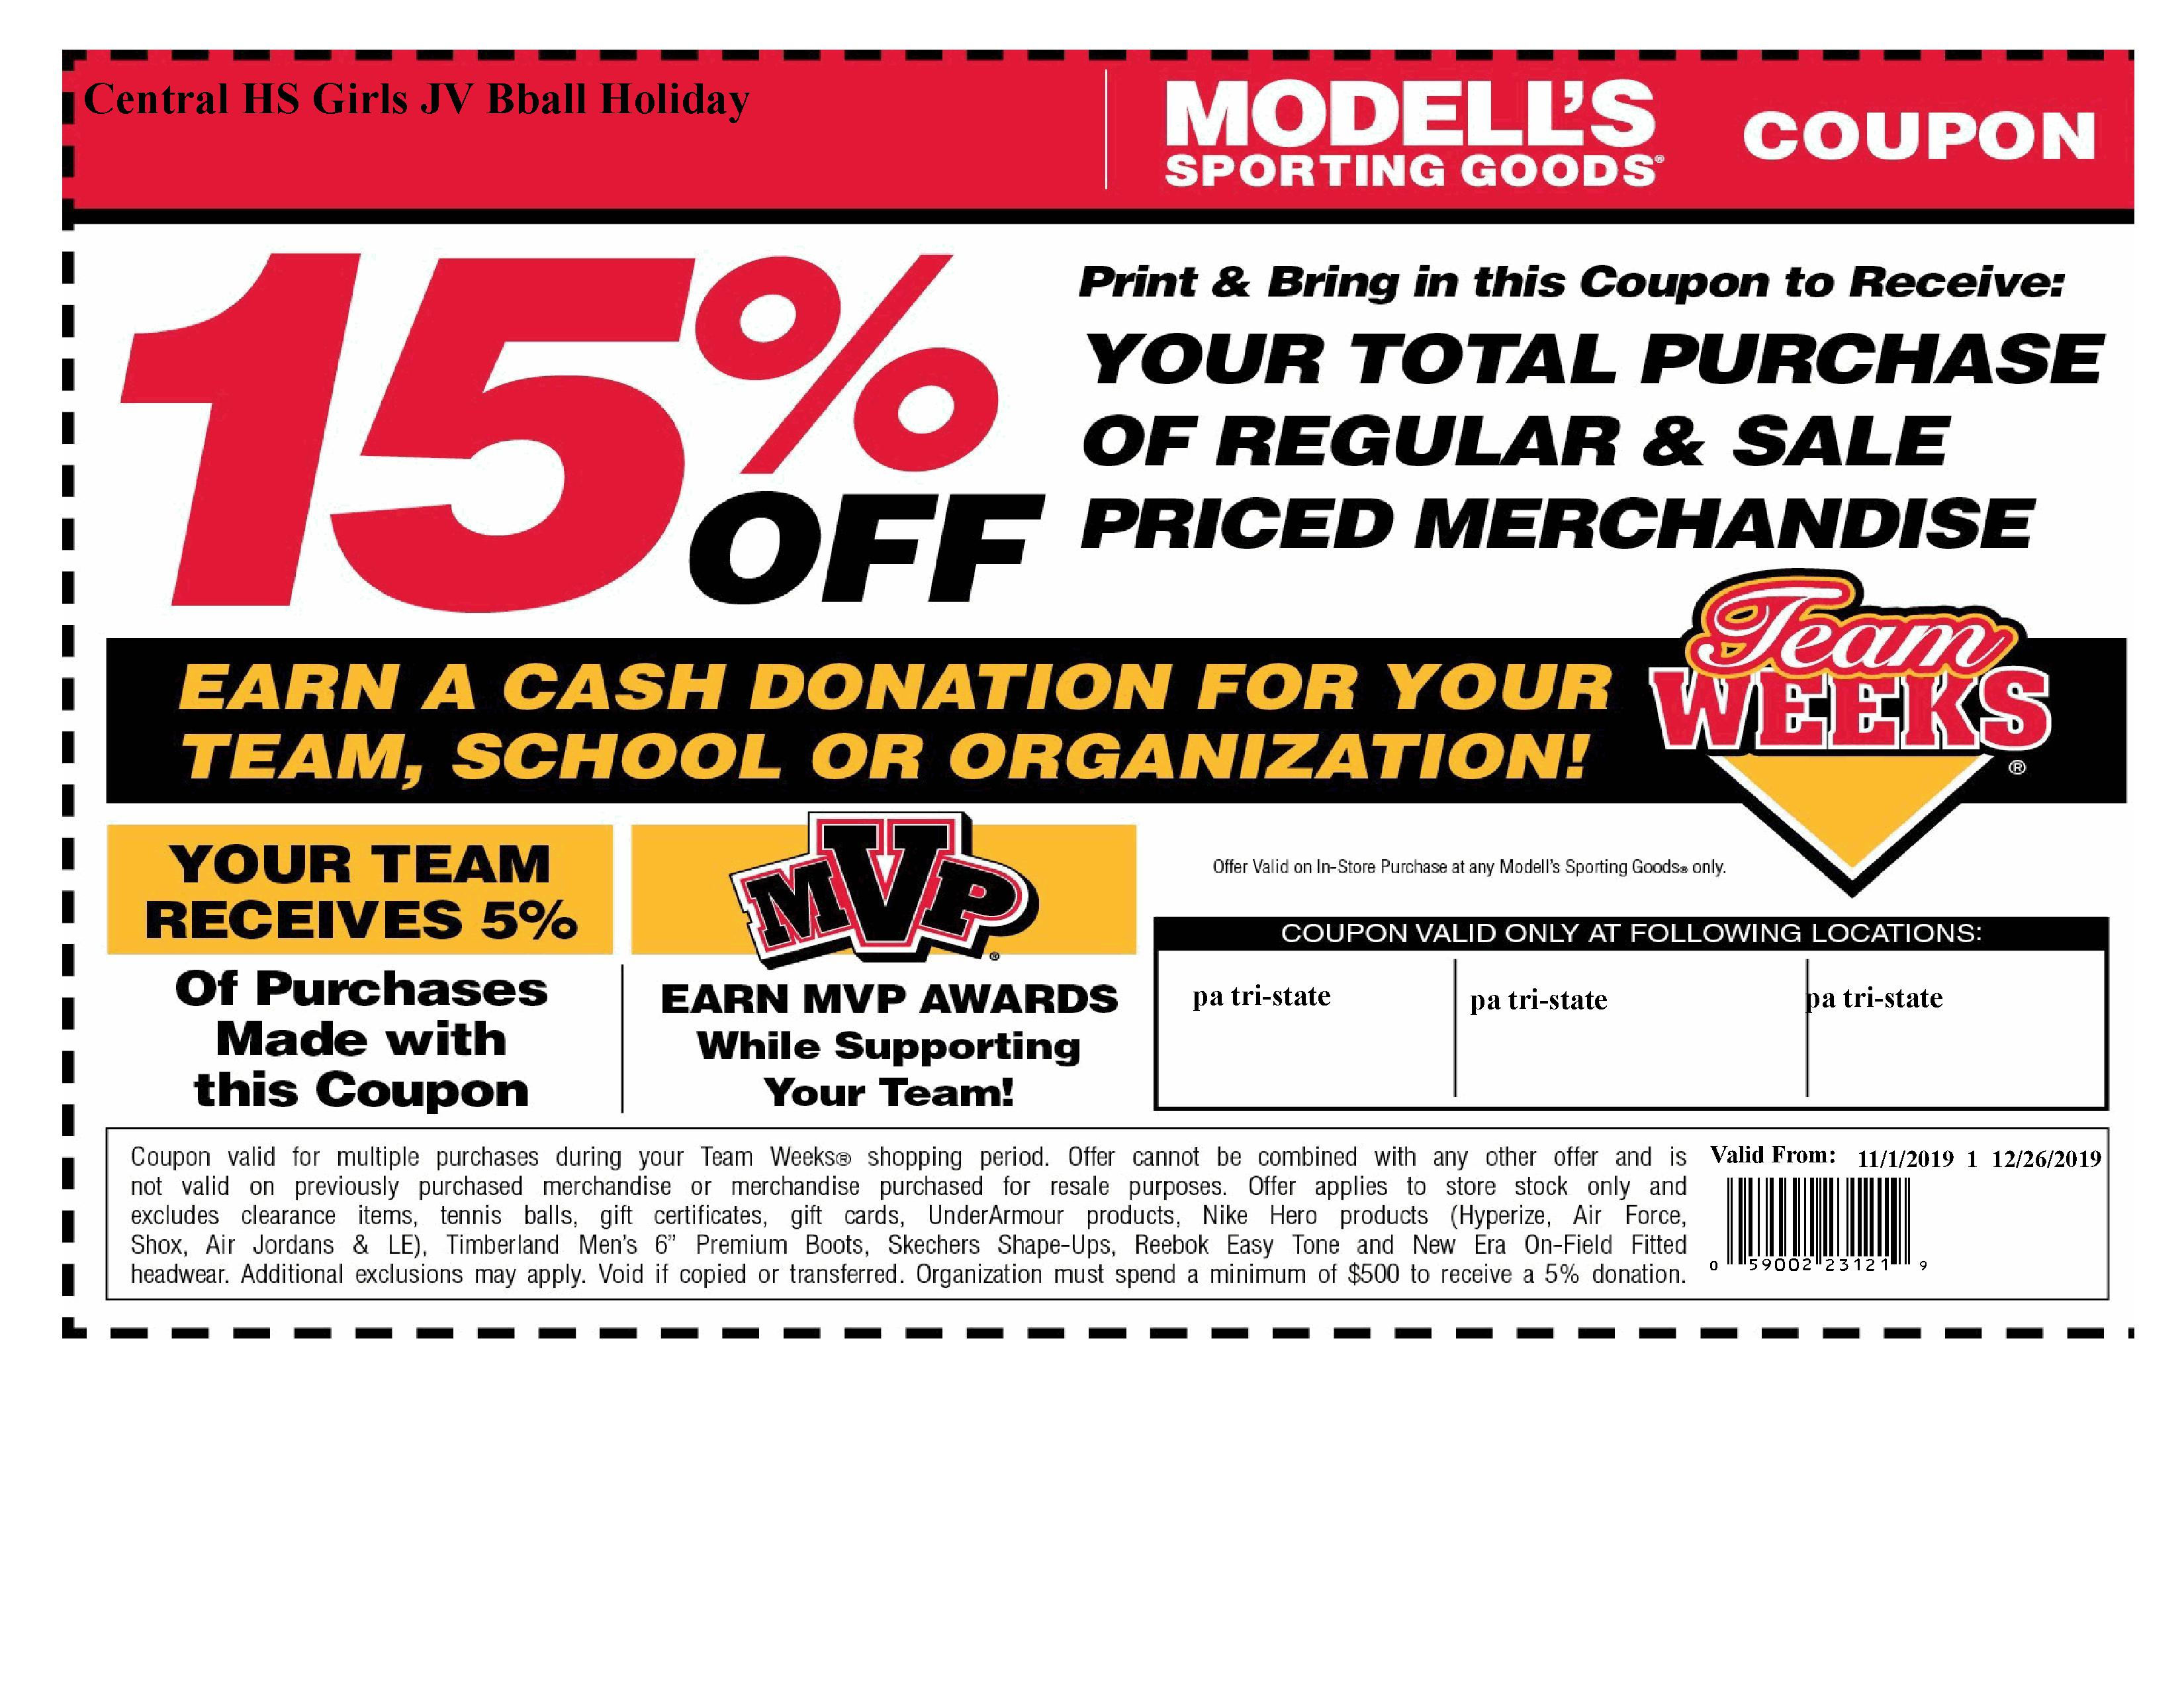 15% off Modell's